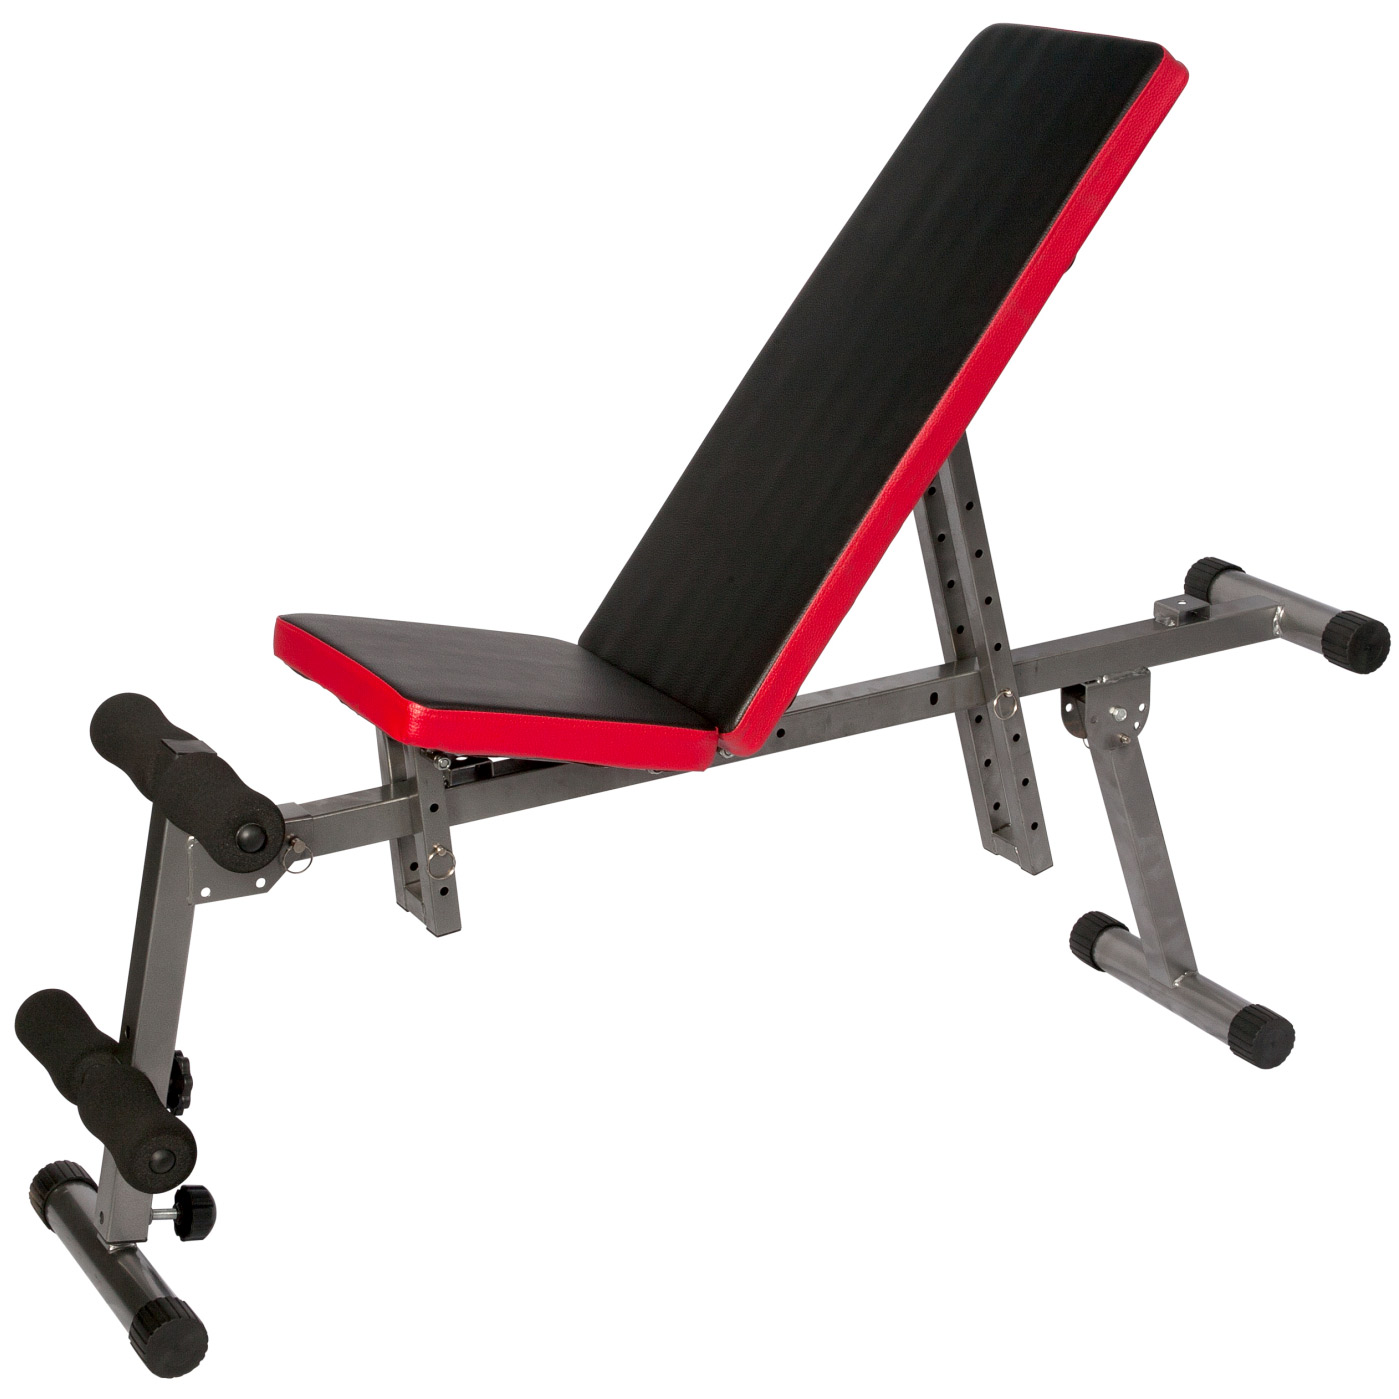 Crescendo Fitness Adjustable Exercise Bench